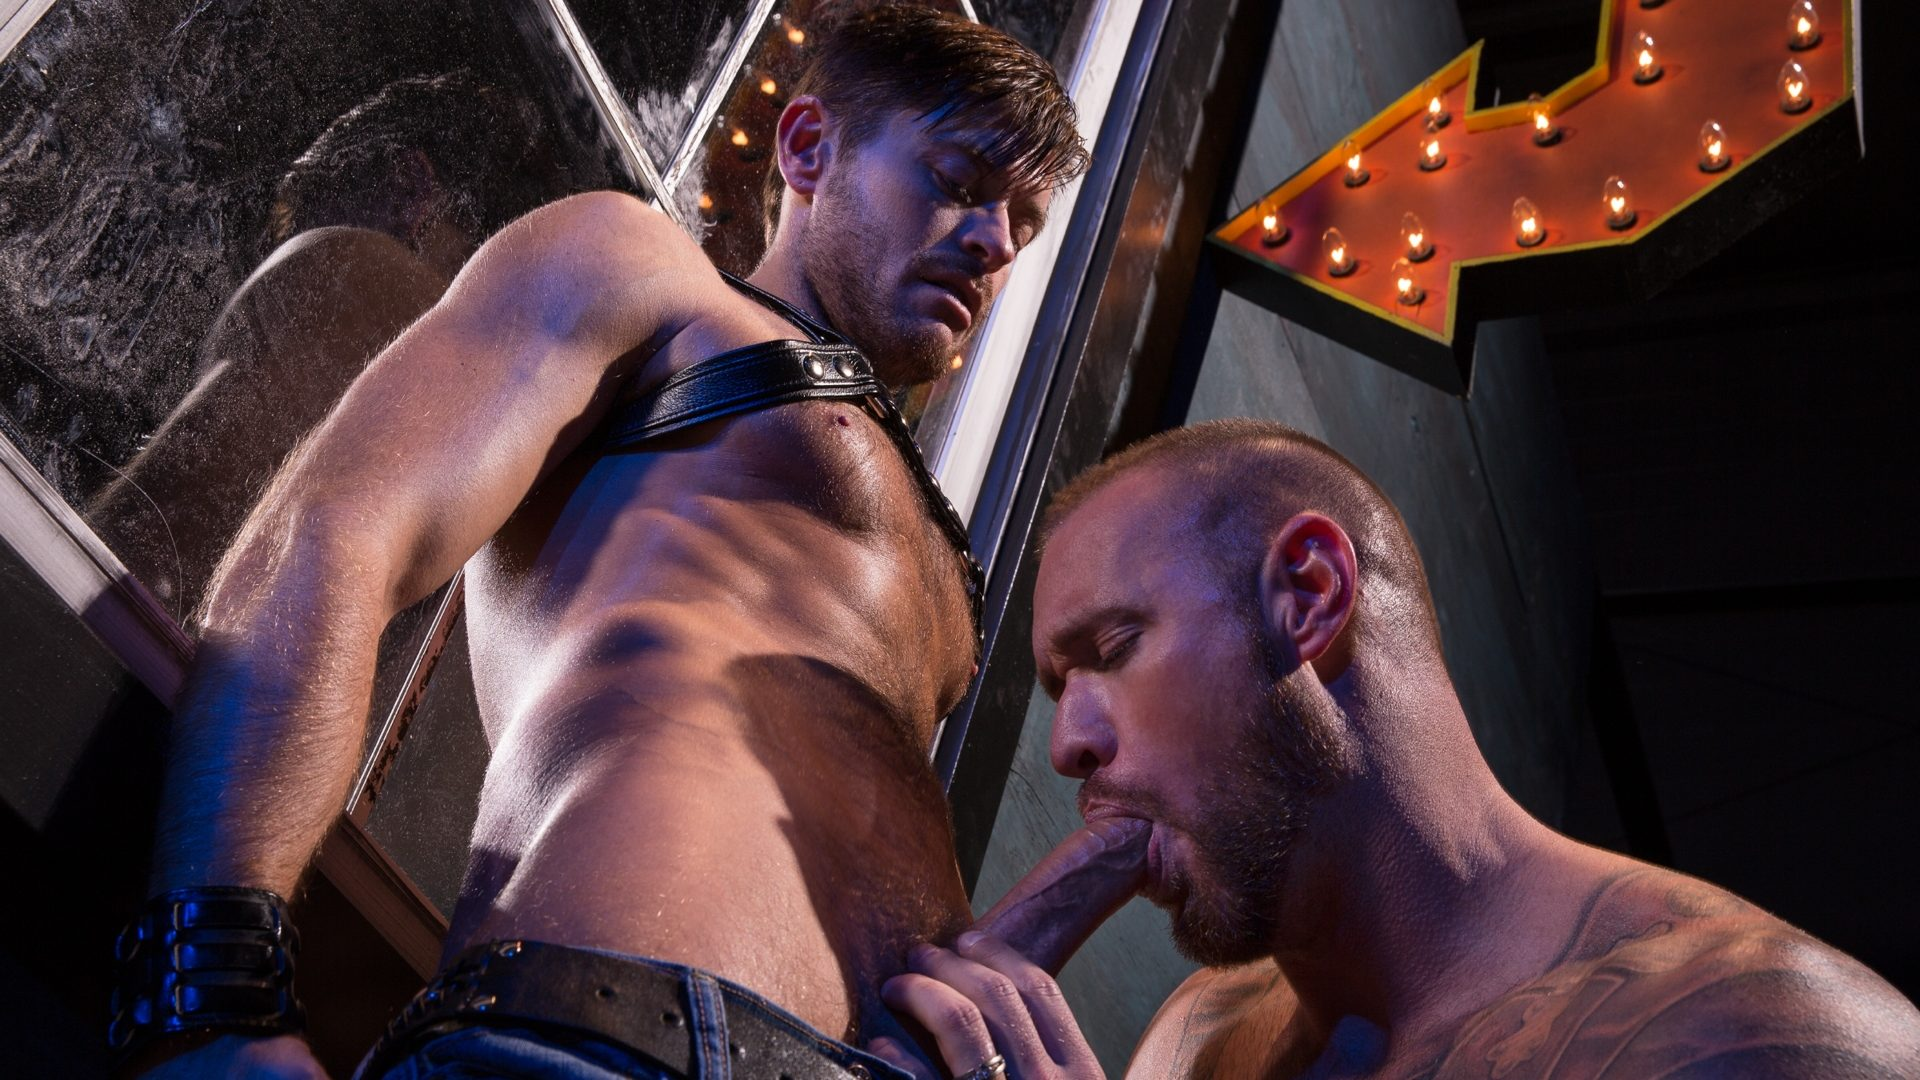 Leather Sex: Jack Andy and Michael Roman – Part 1